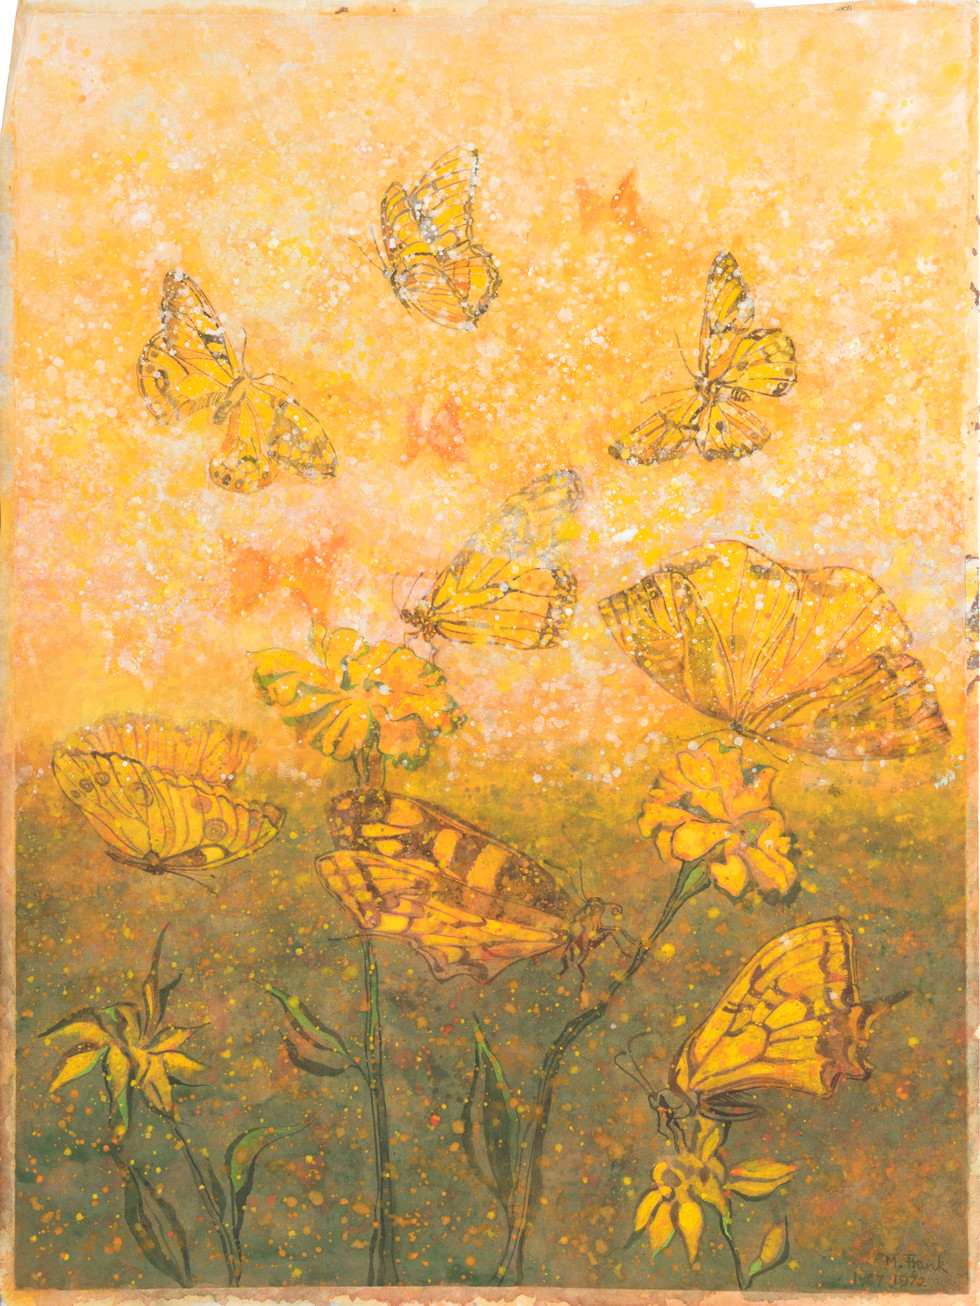 Untitled - orange butterflies and flowers